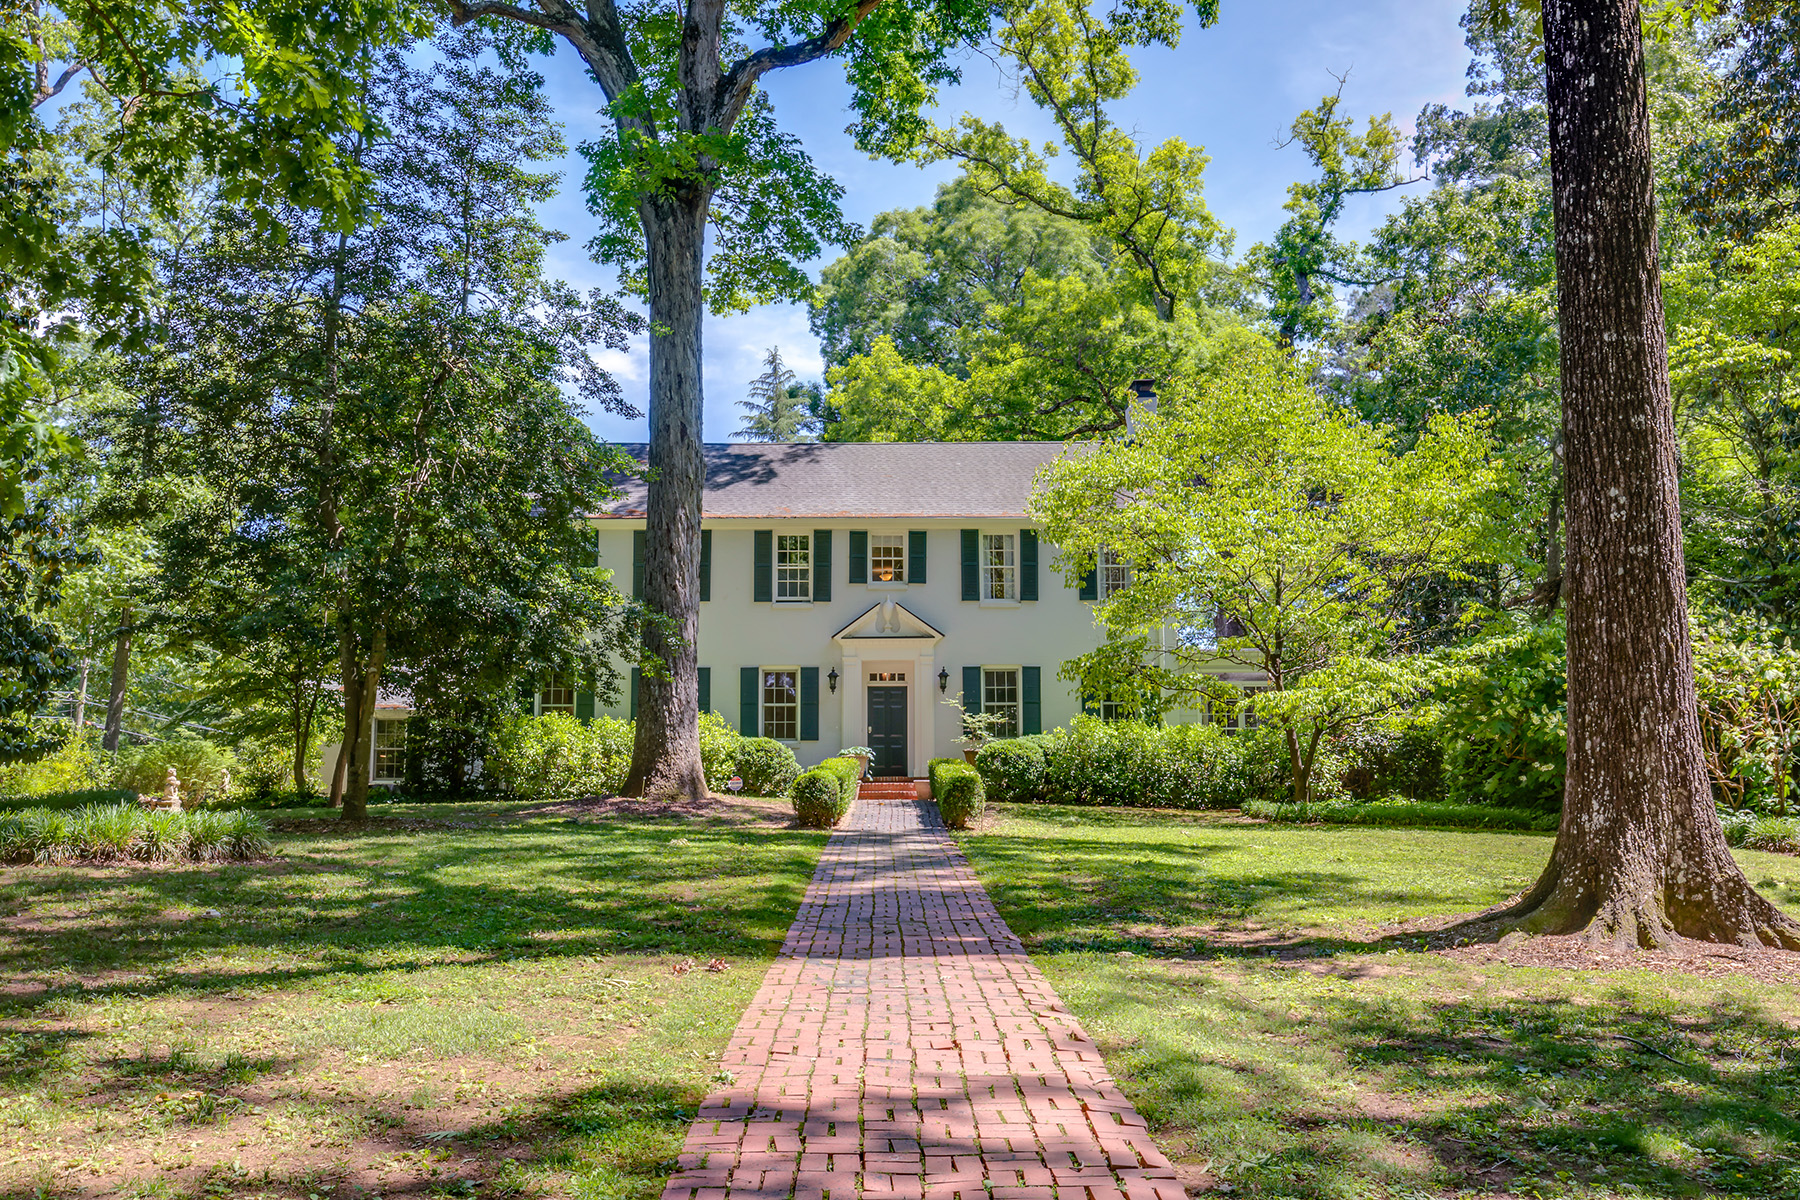 Single Family Homes for Sale at One of the most graceful alluring estates in the City of Decatur 755 Kirk Road Decatur, Georgia 30030 United States